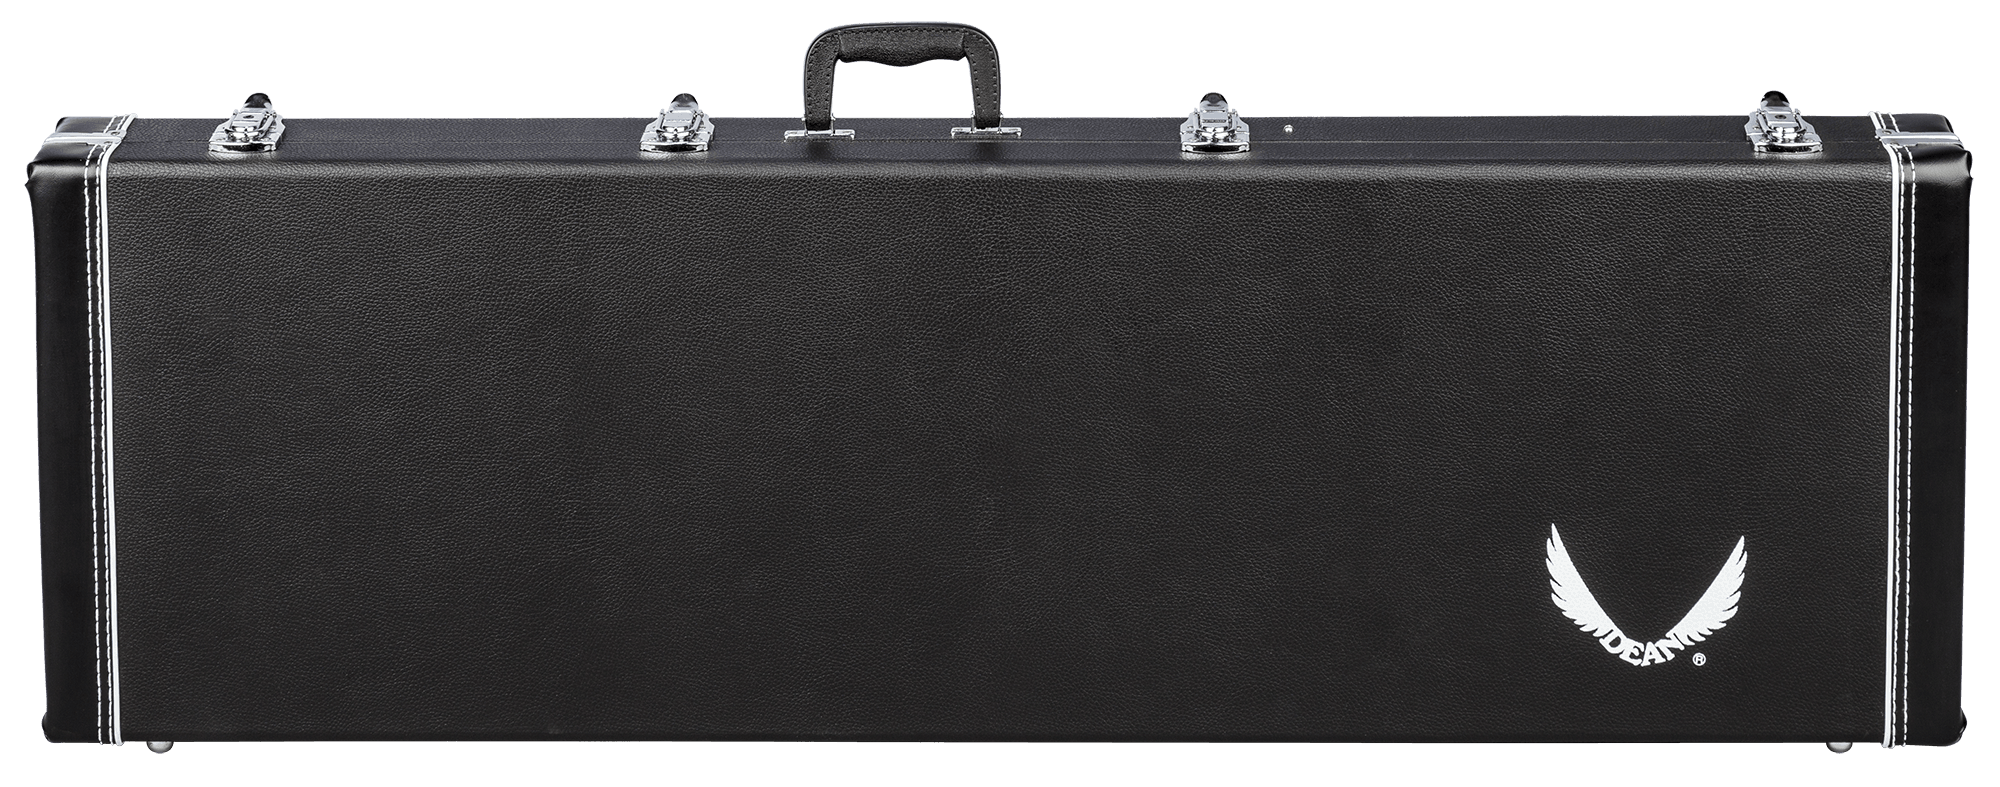 Dean Deluxe Hard Case Elec & Edge Bass